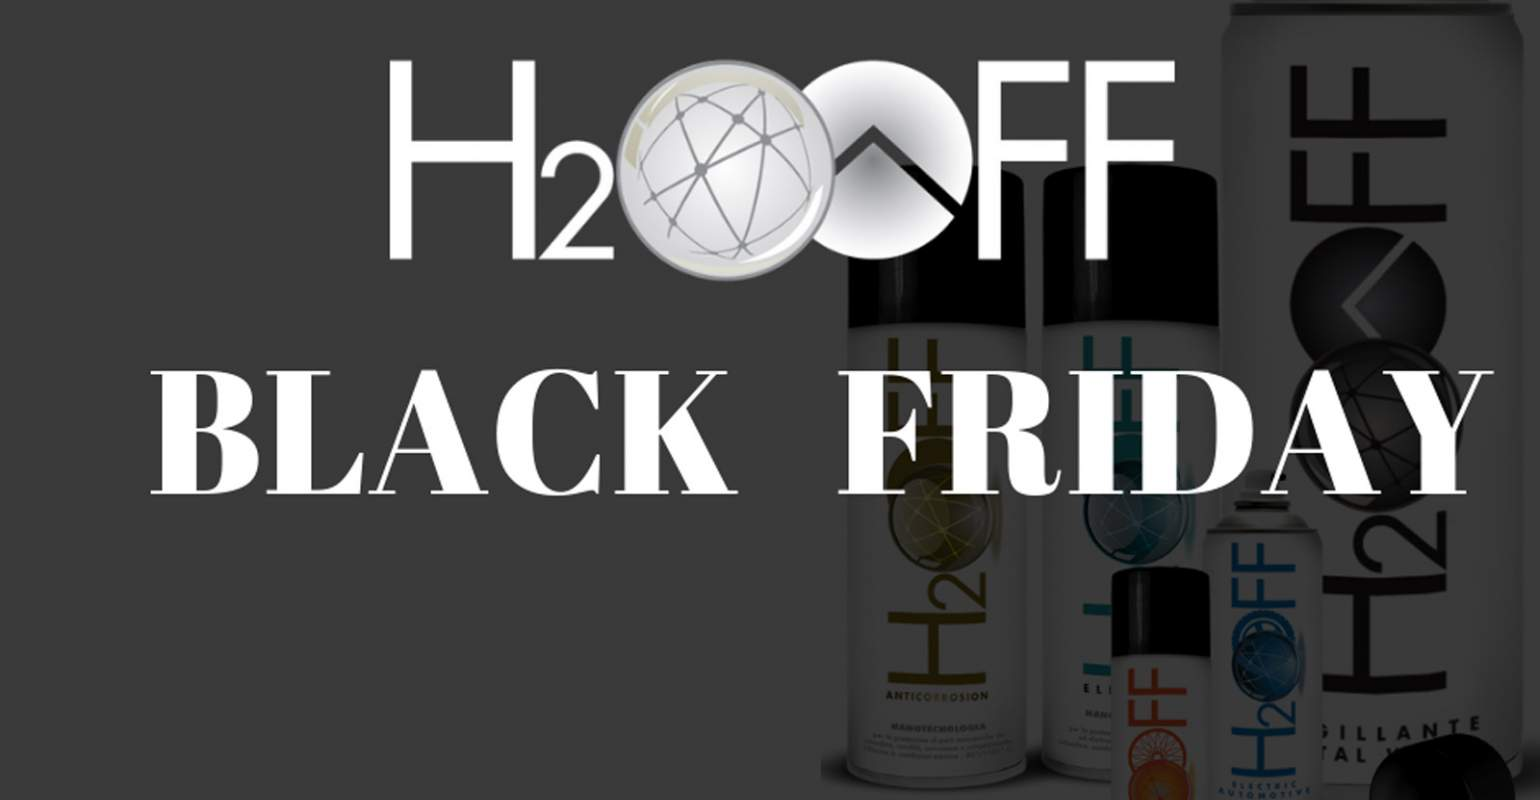 BLACK FRIDAY 2019 occasioni  H2OFF!